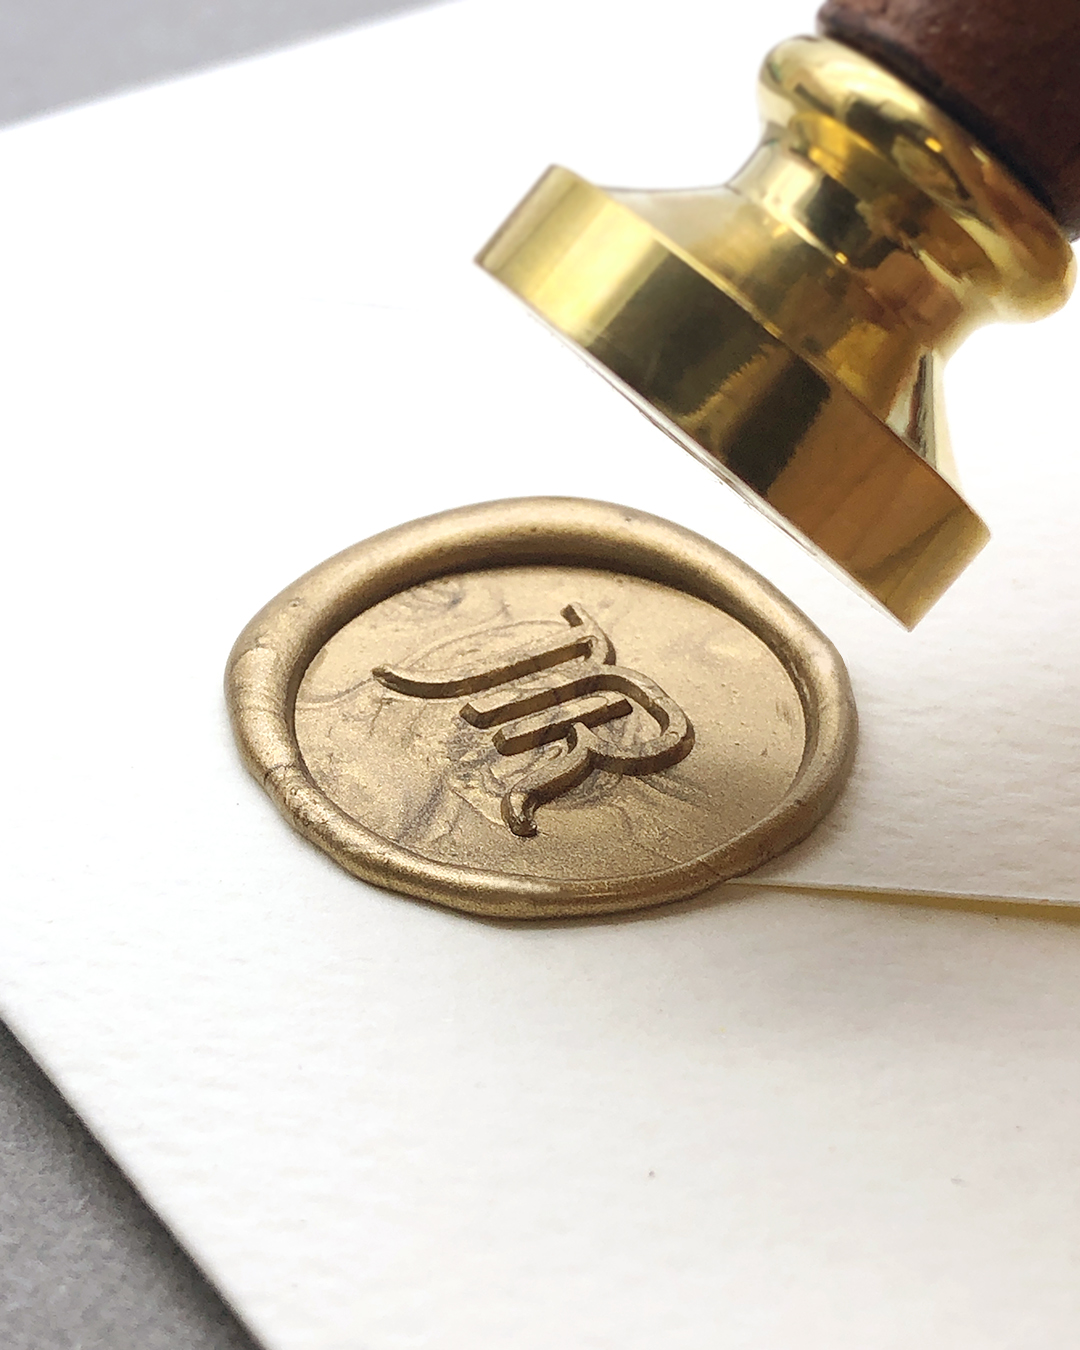 Learn to determine when the melted sealing wax is ready to be stamped